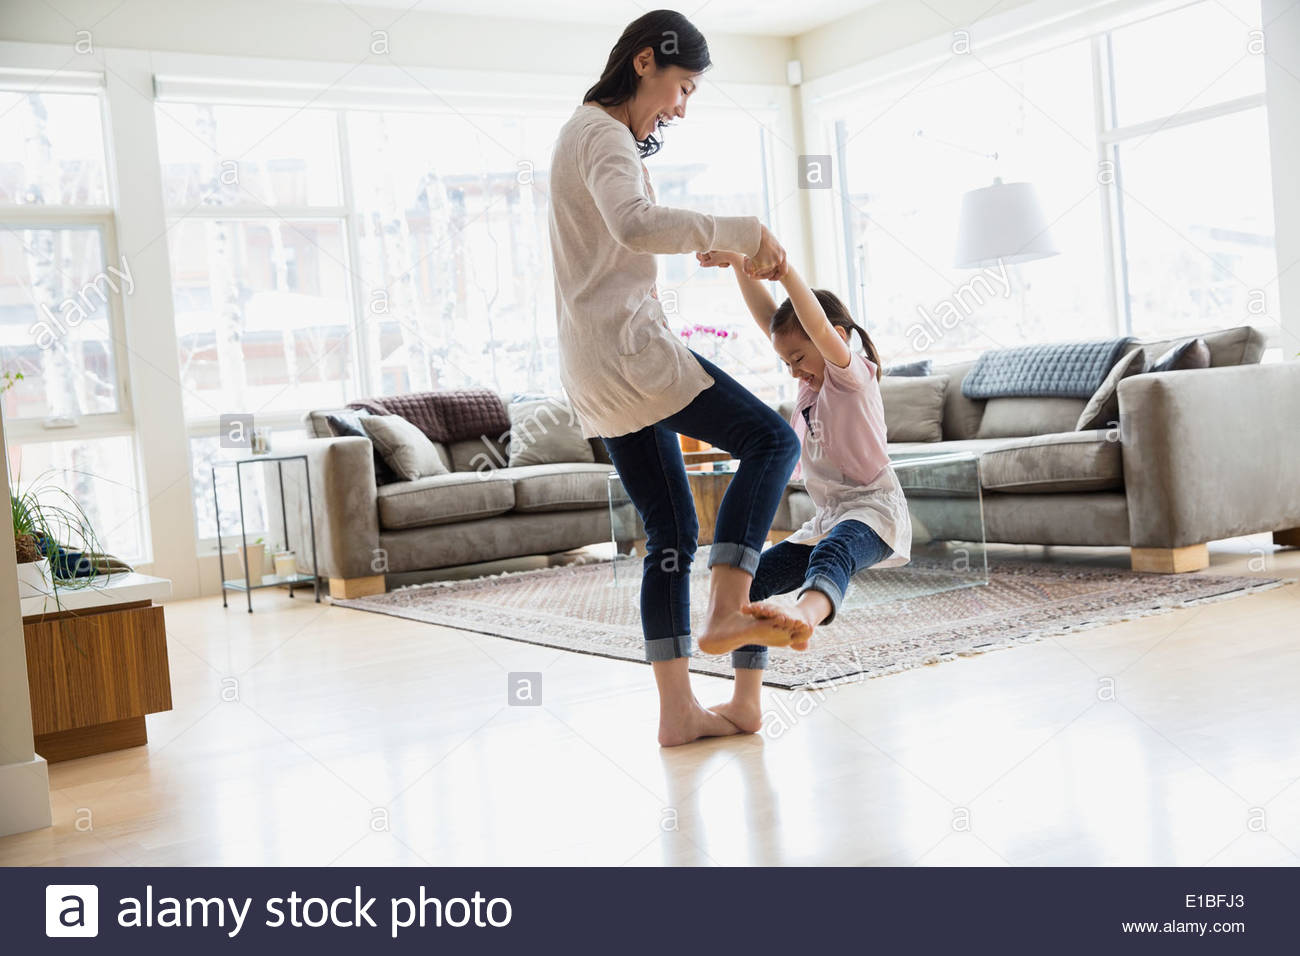 Daughter dancing on mothers feet in living room - Stock Image